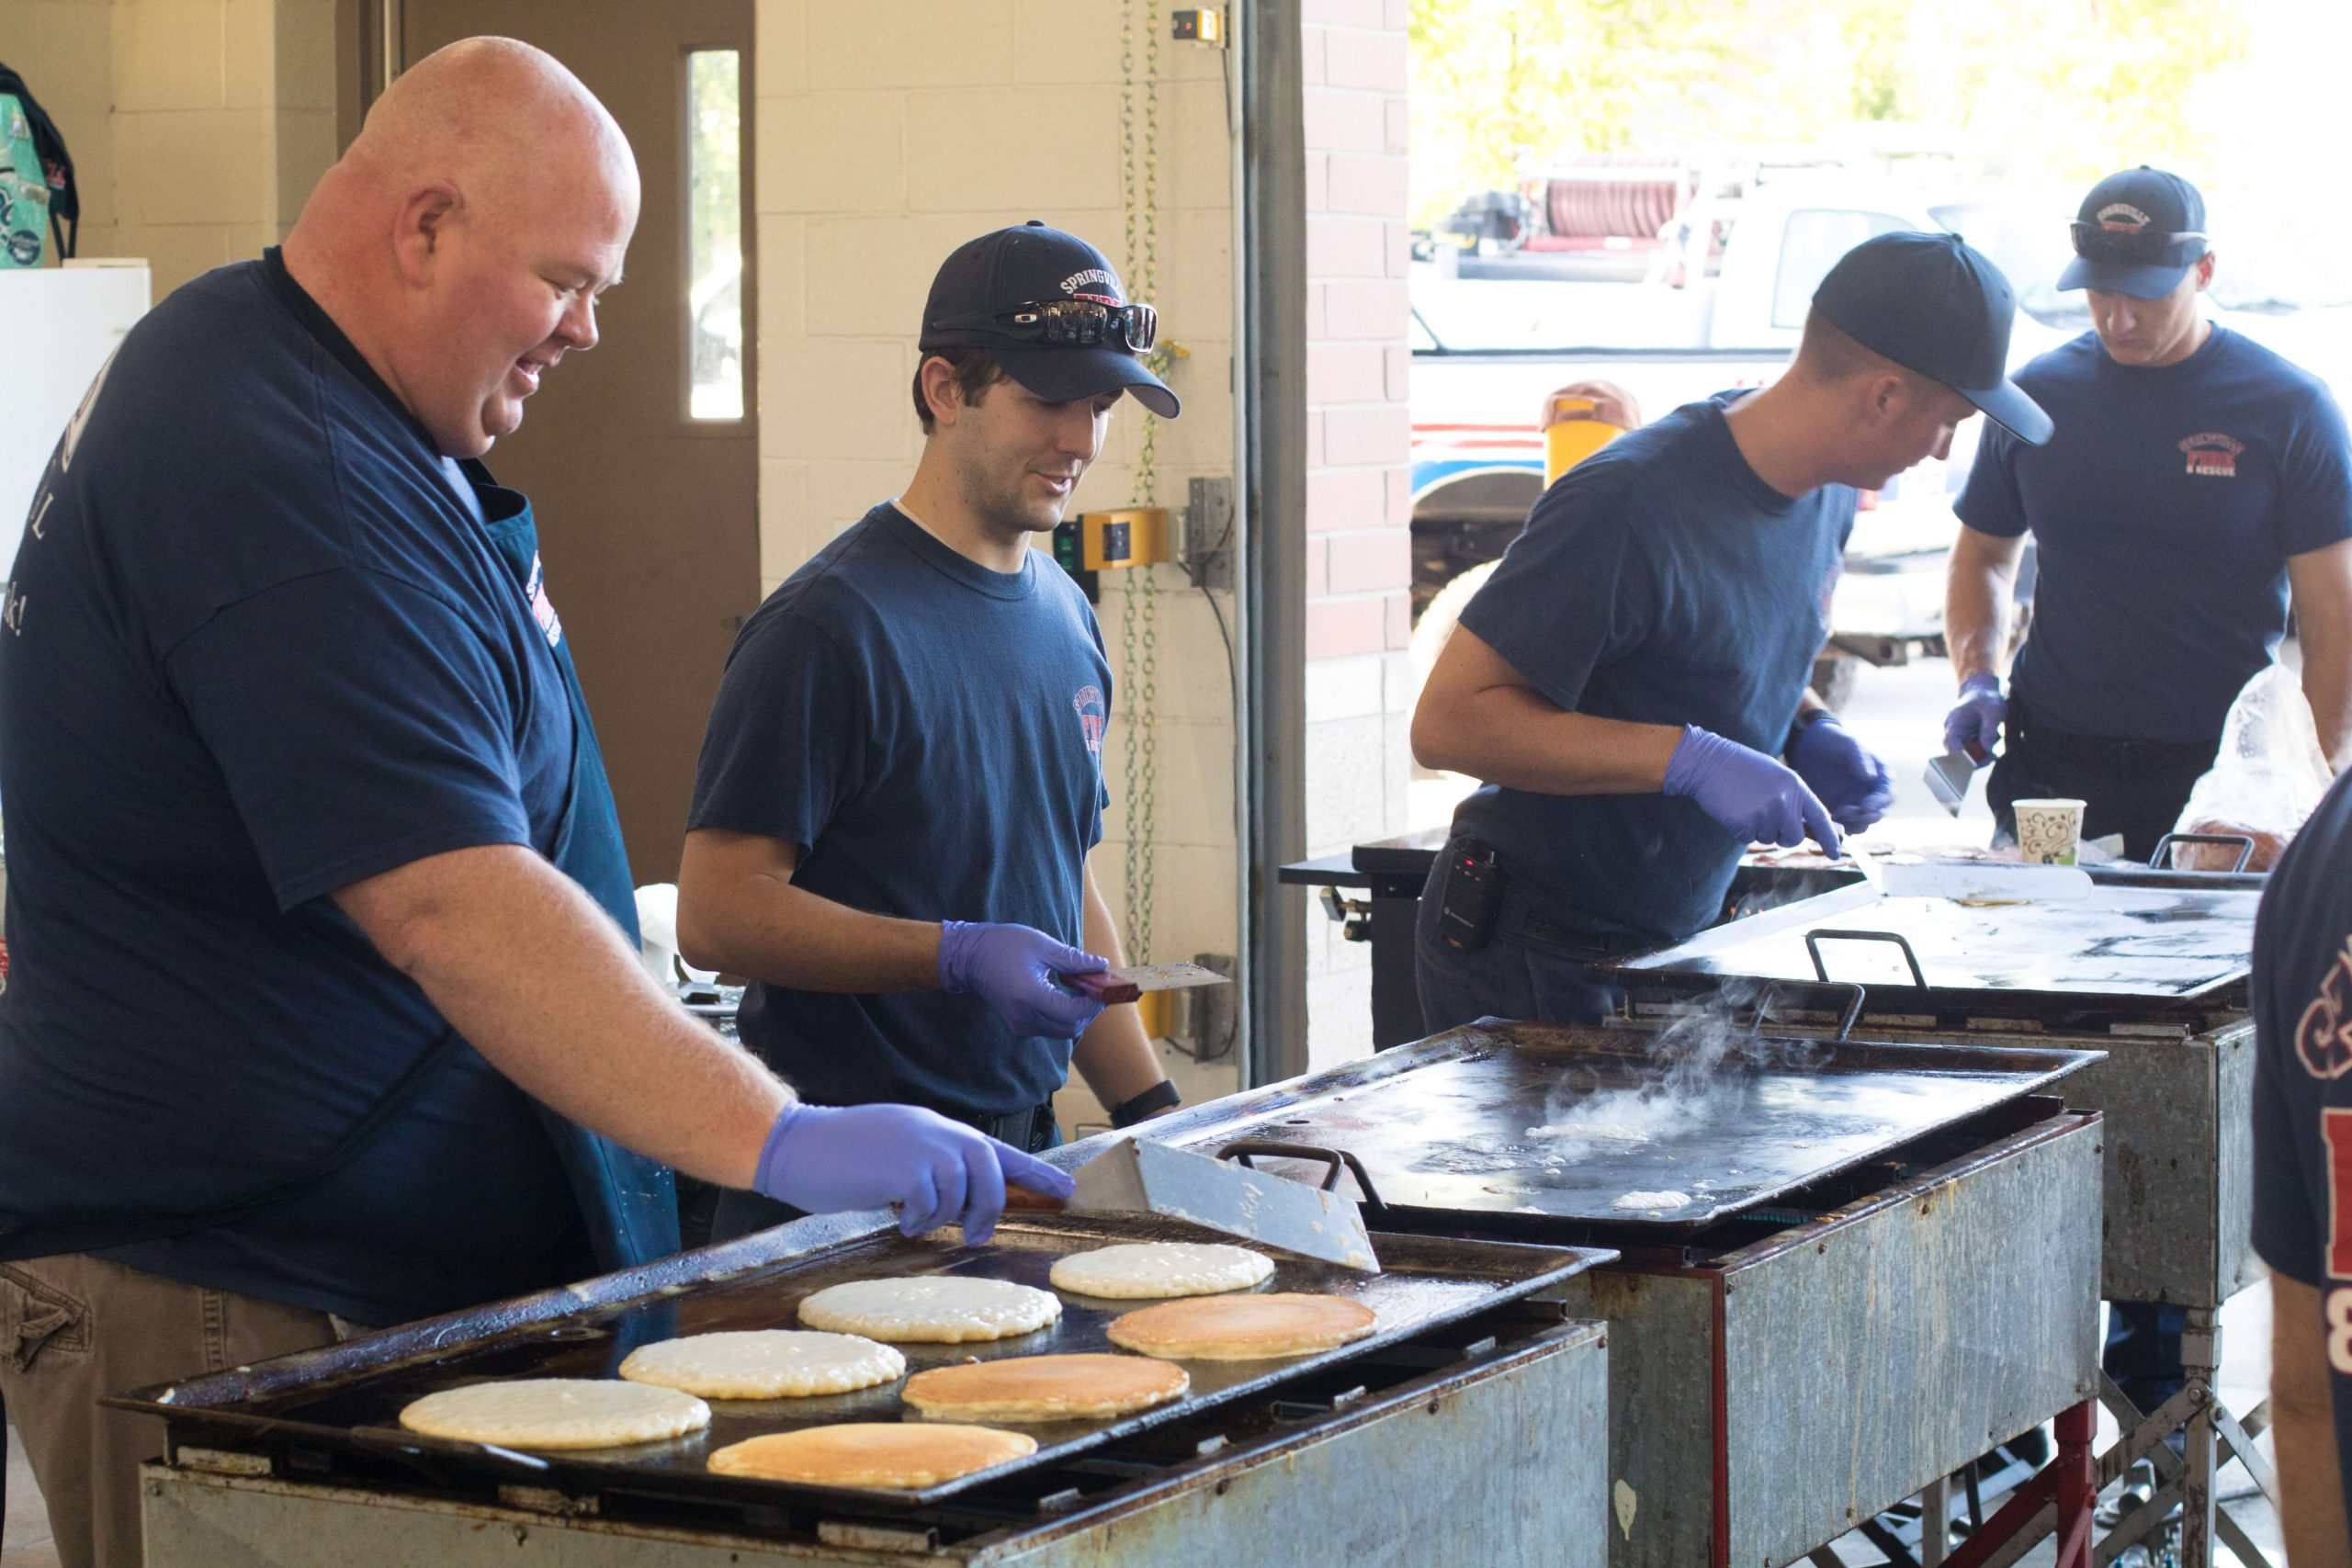 Fireman's Breakfast @ Springville Fire Station